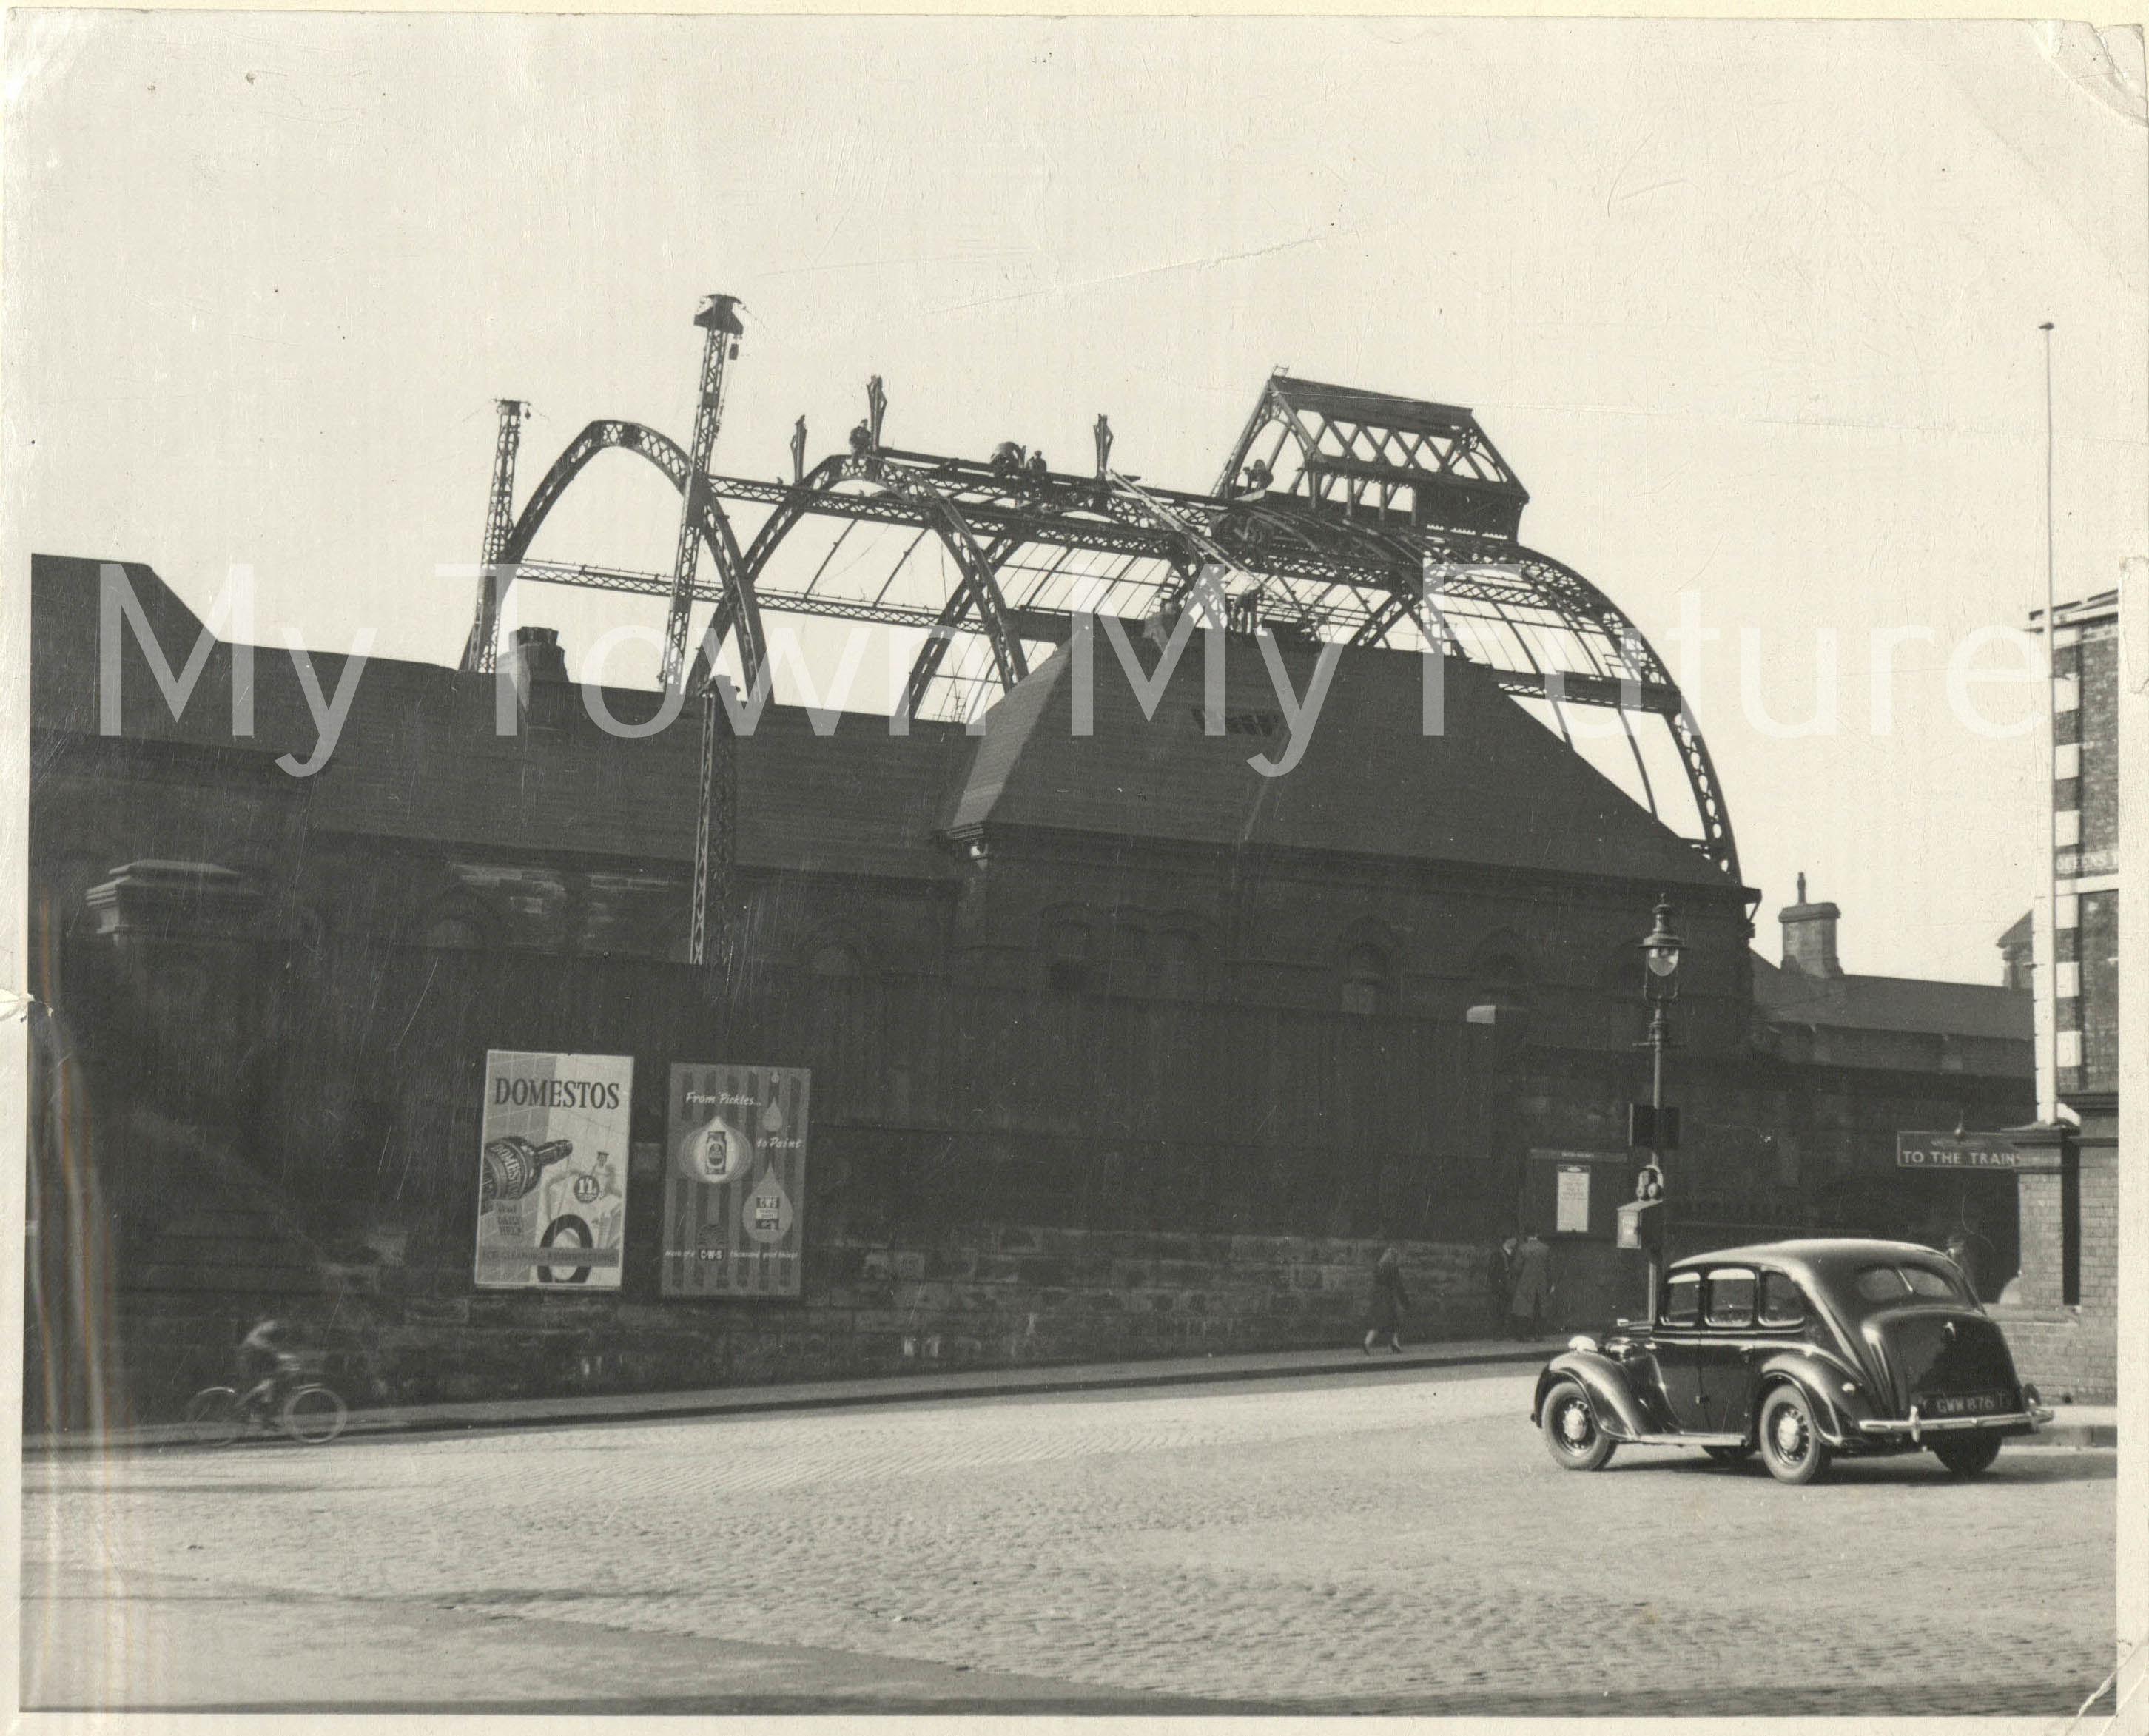 Middlesbrough Railway Station Removal Of Arched Roof 1954